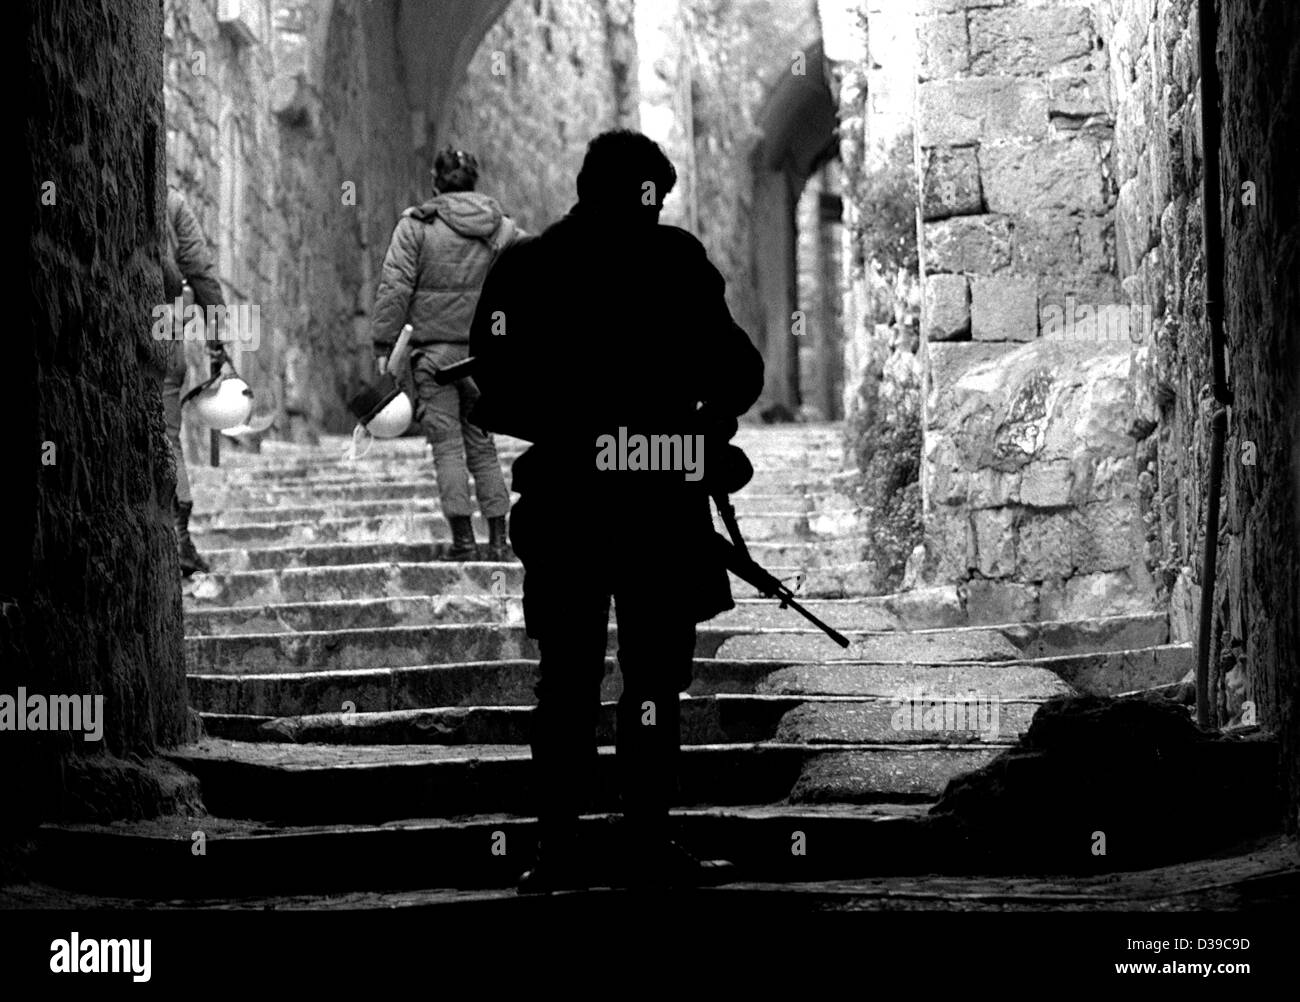 Israeli Defense Force Patrol at the start of the Palestinian Intifada patrolling East Jerusalem. - Stock Image